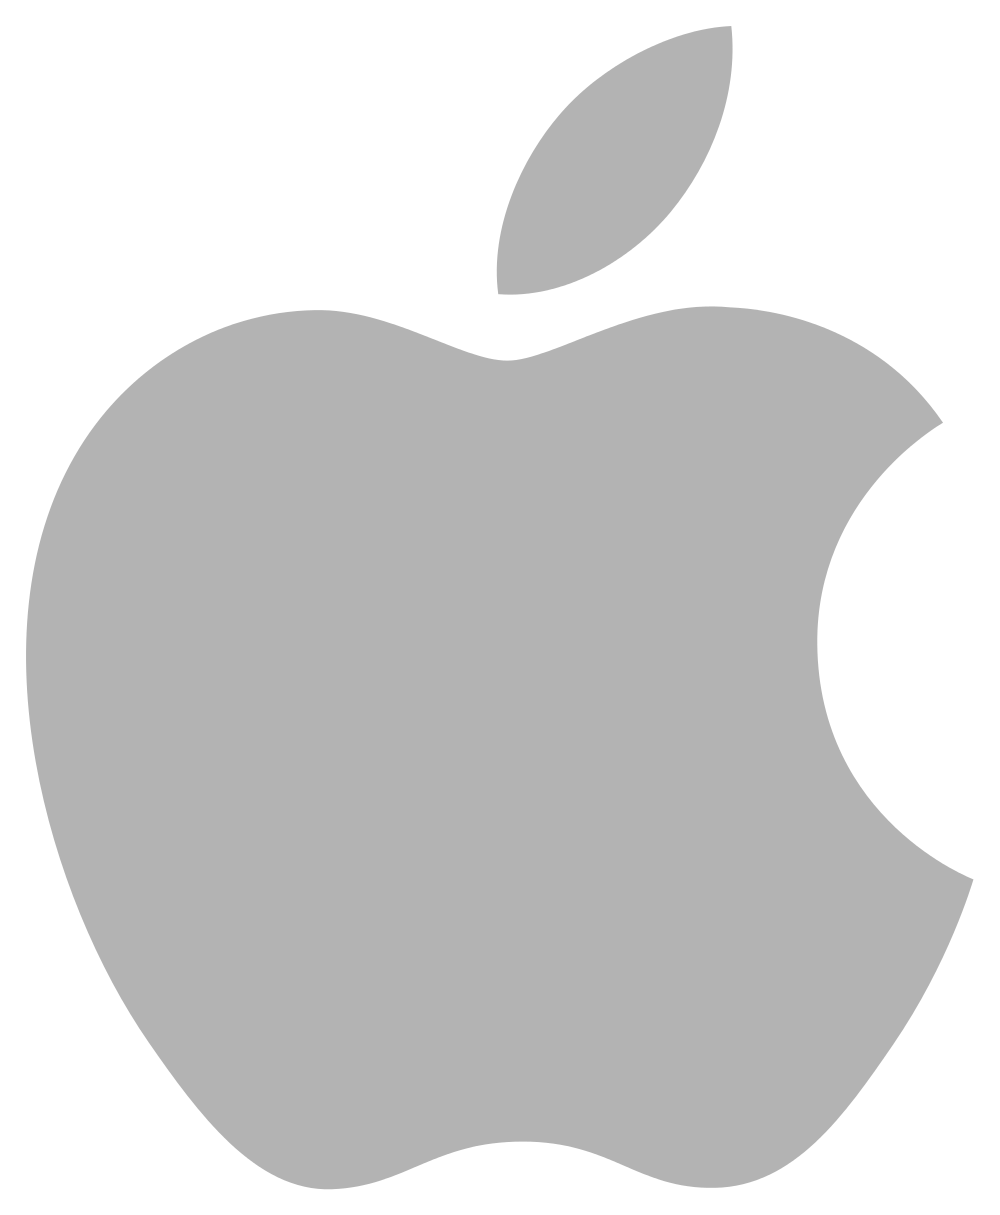 Collection of 14 free White apple logo png bill clipart dollar sign.